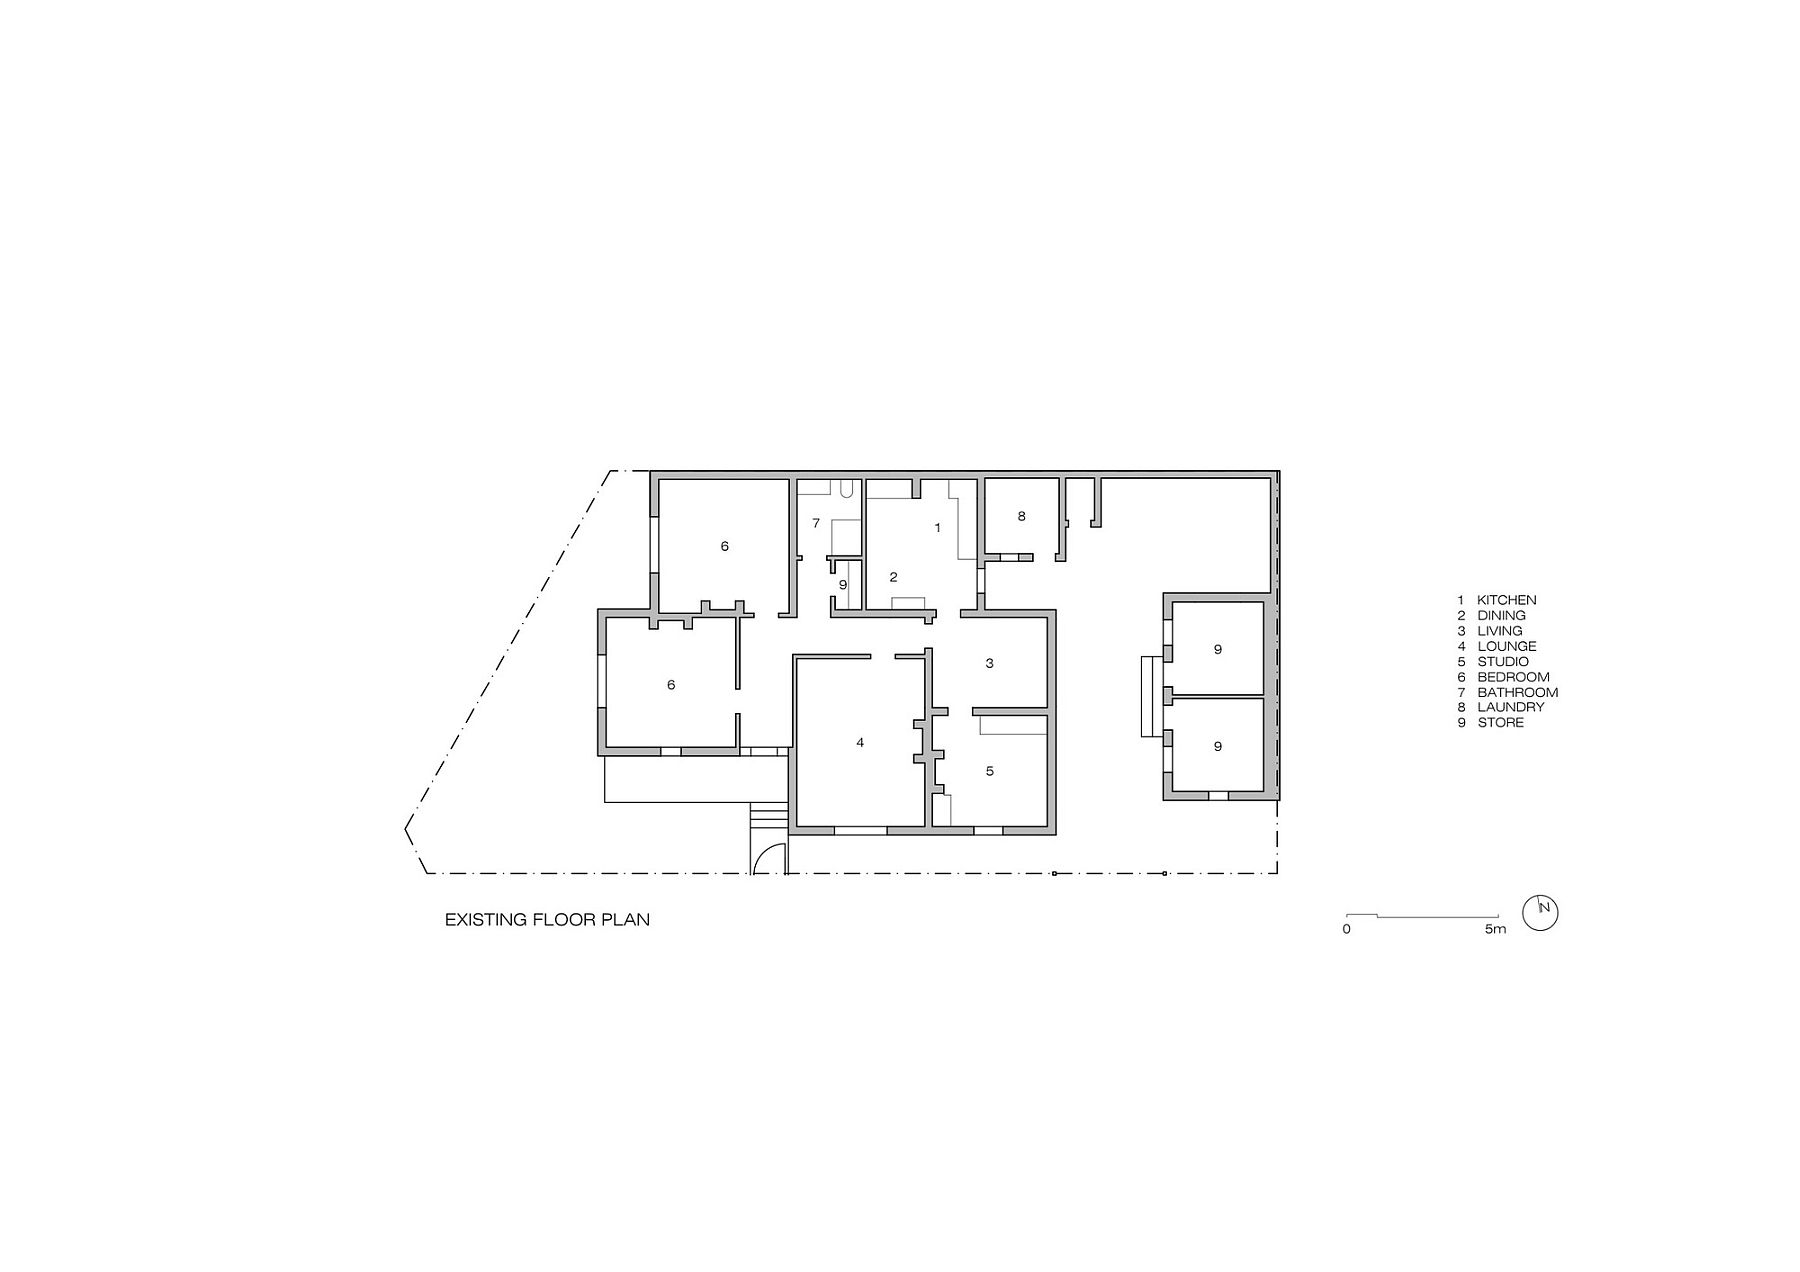 Existing floor plan of the classic Melbourne home with brick facade before extension